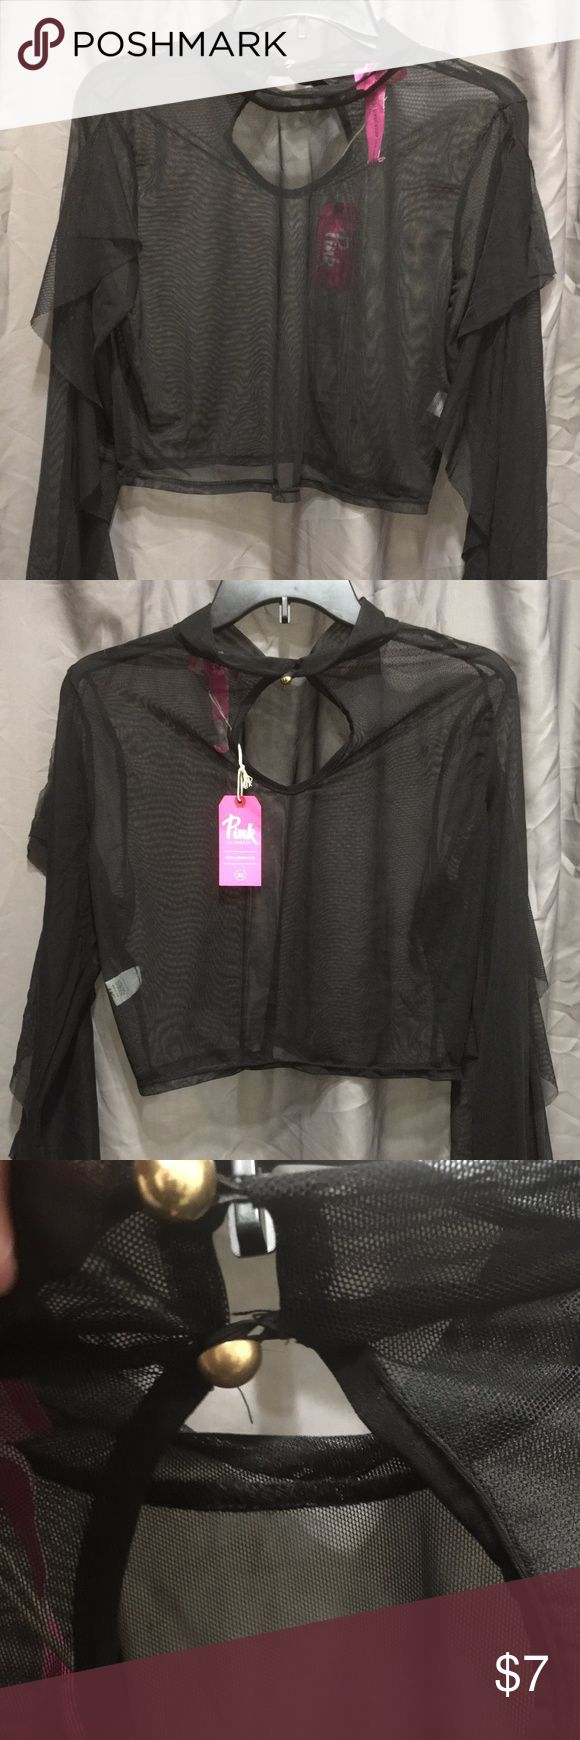 plus sz crop top plus size sexy sheer crop top with flare arms...never worn..this is see thru....great stretch if u normally wear a sz 2x you will be able to rock this tag says plus sz 3x pink clubwear Tops Crop Tops